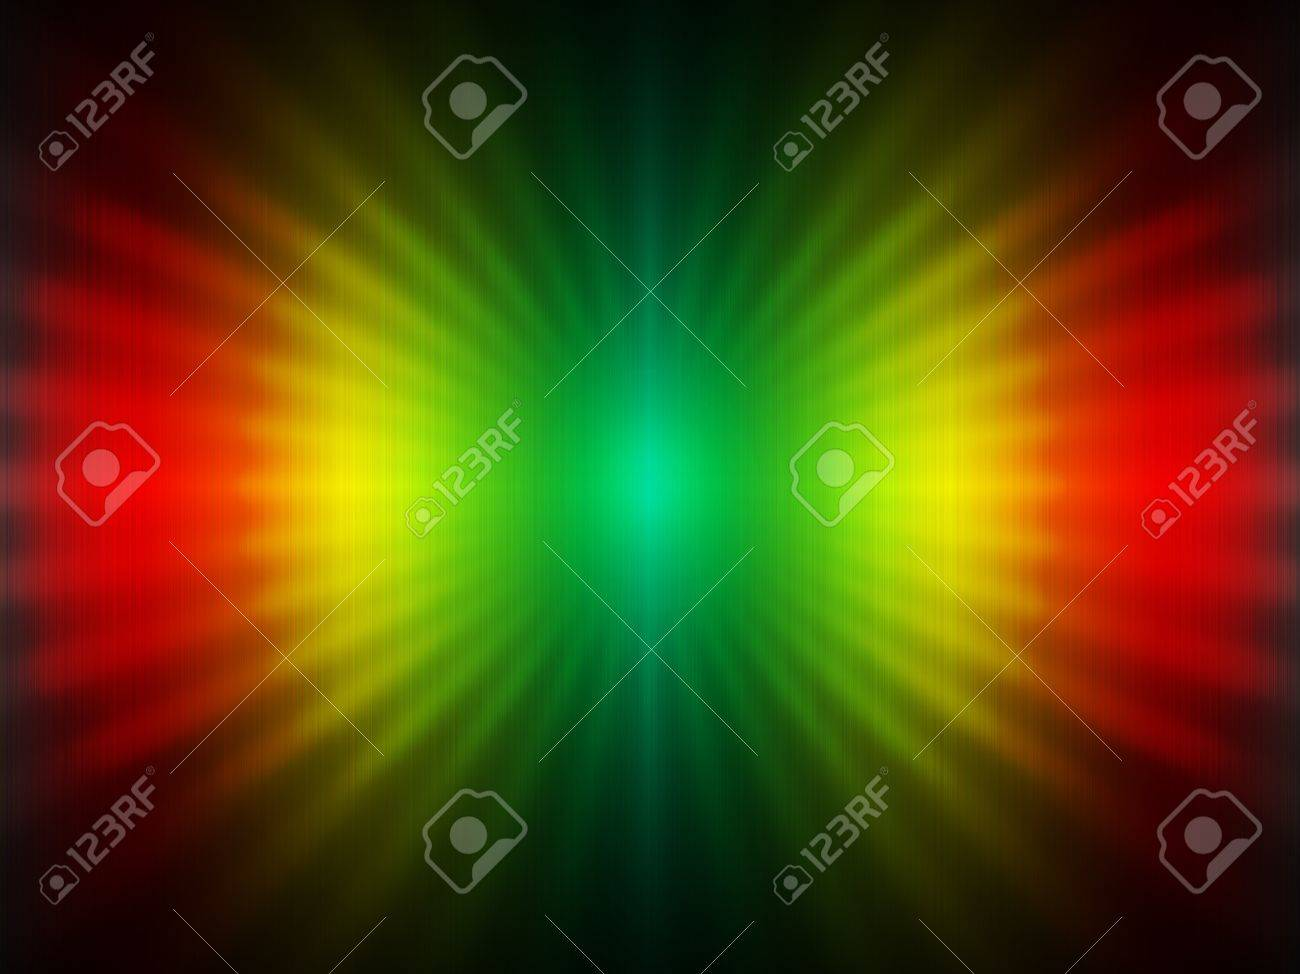 Multicolor Abstract Background Stock Photo - 8969857